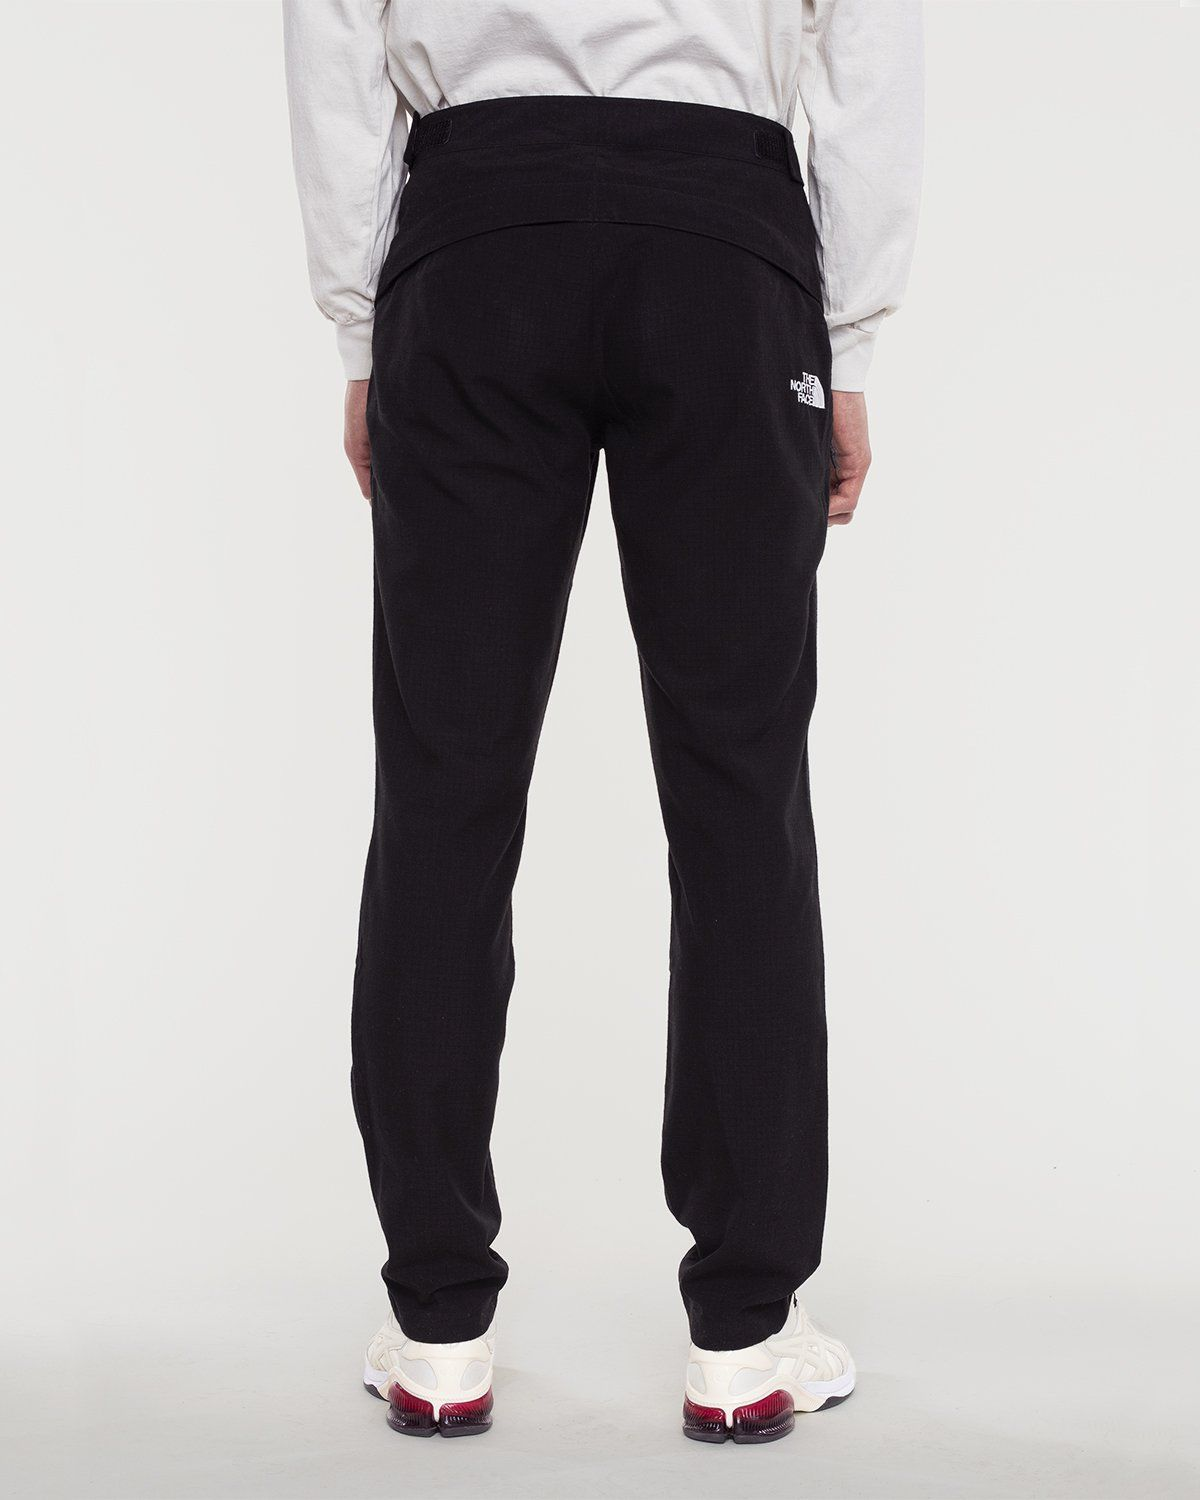 The North Face Black Series - Ripstop Trousers Black - Image 6